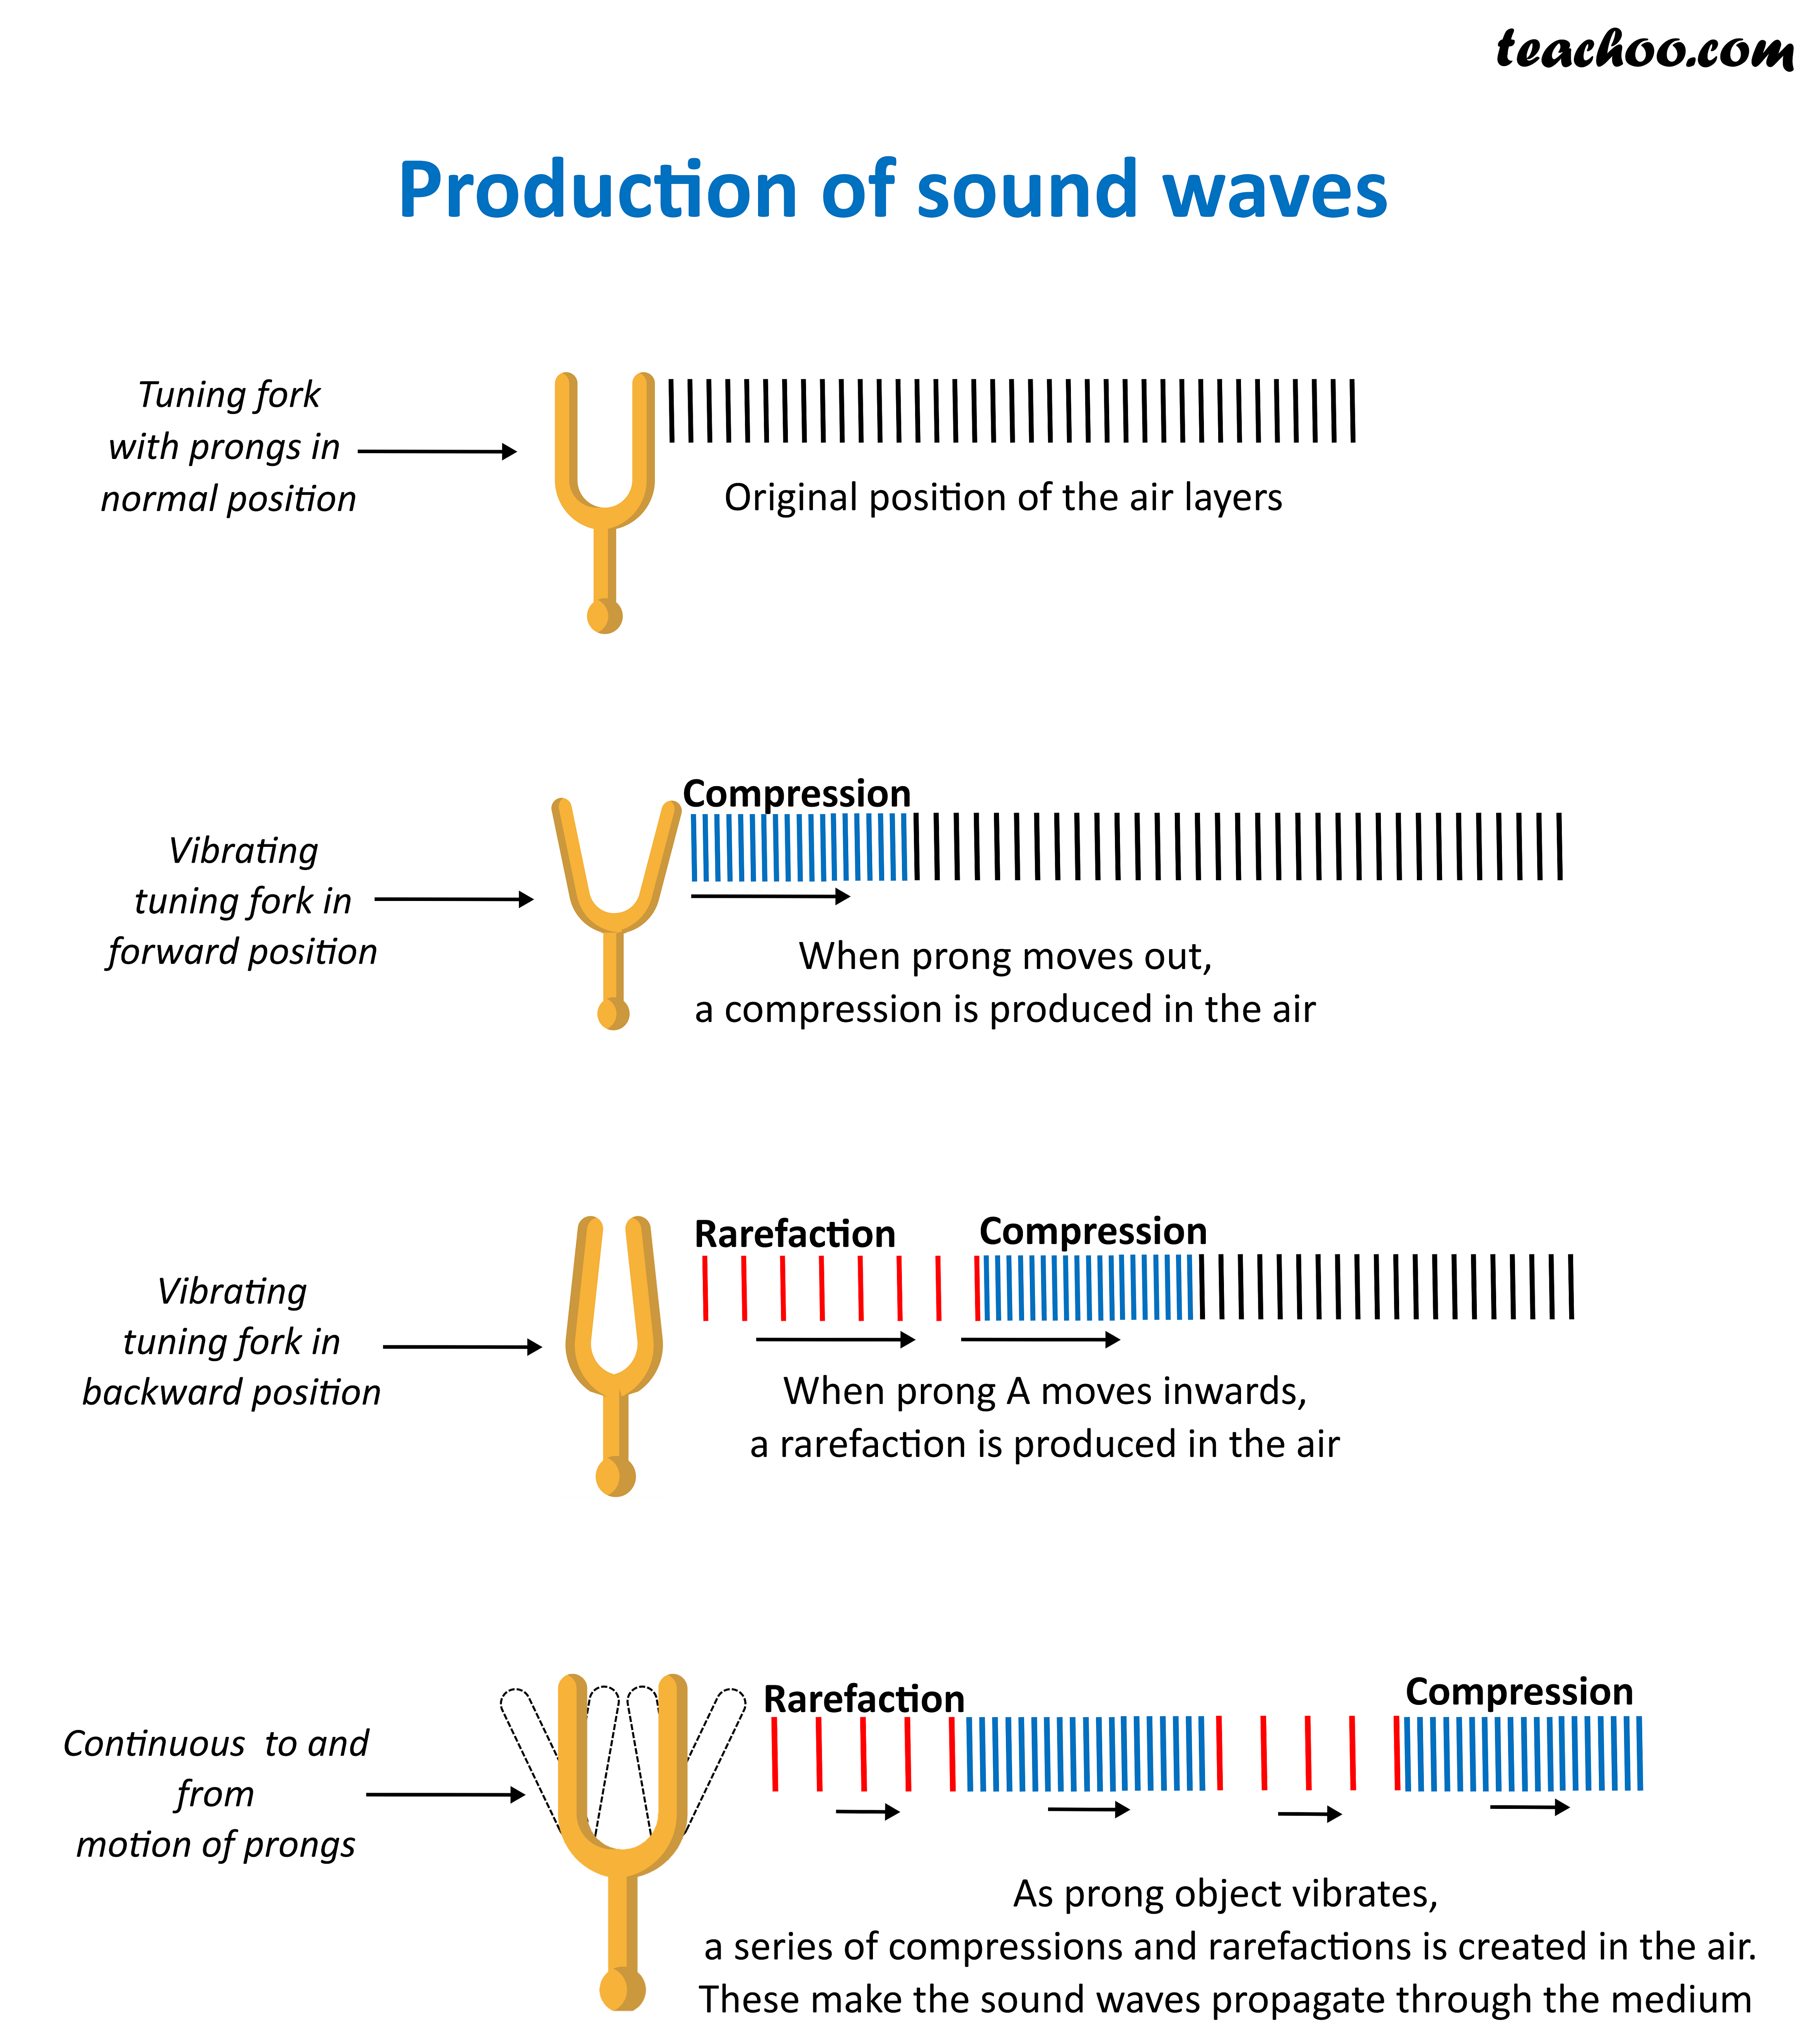 production-of-sound-waves (2).png